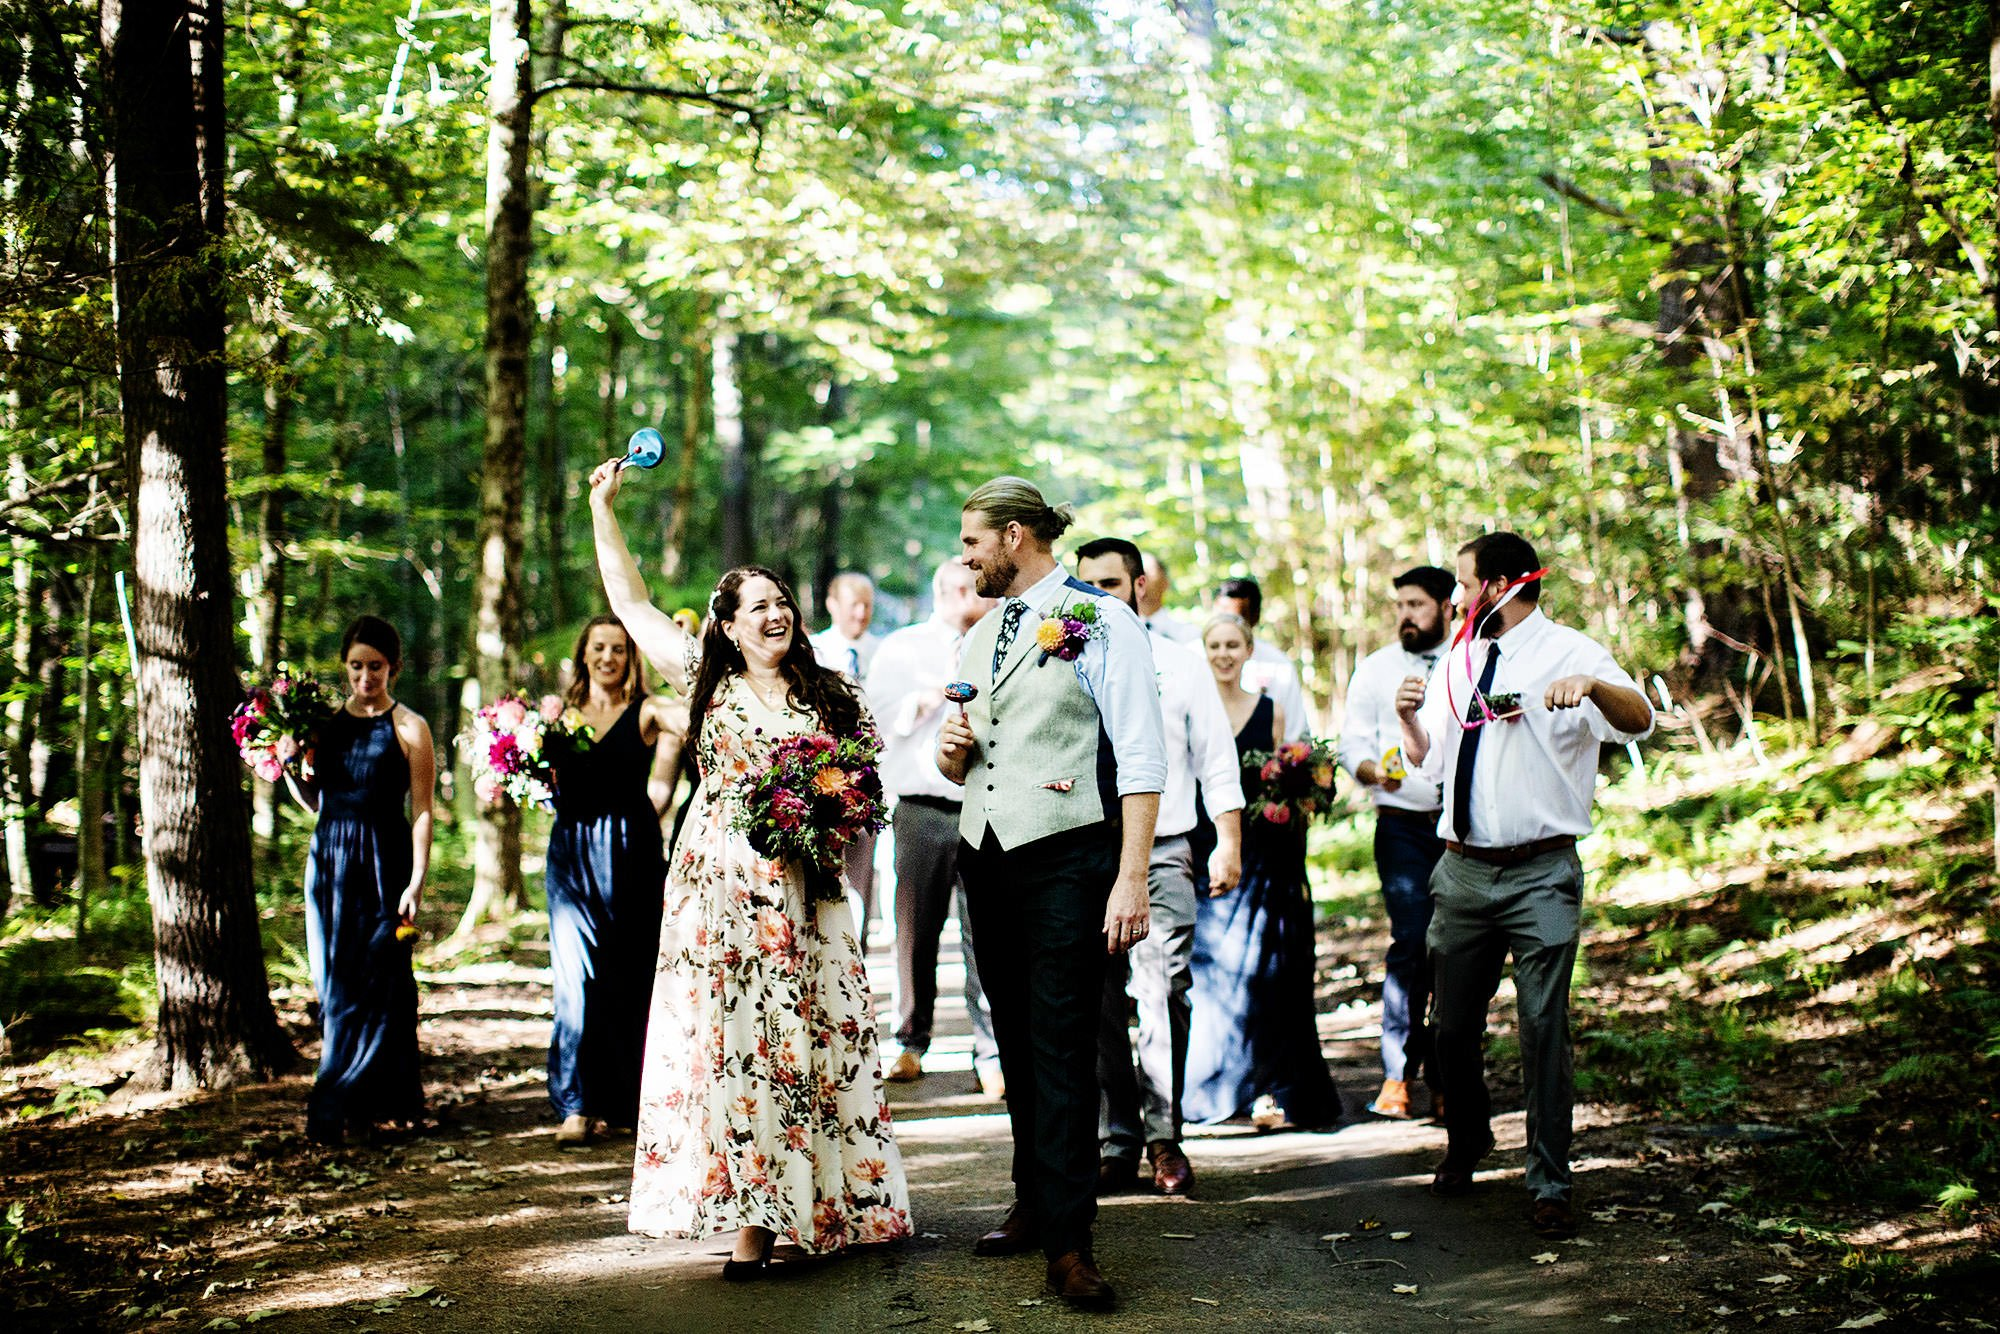 The wedding party cheers following the ceremony at Hulbert Outdoor Center.